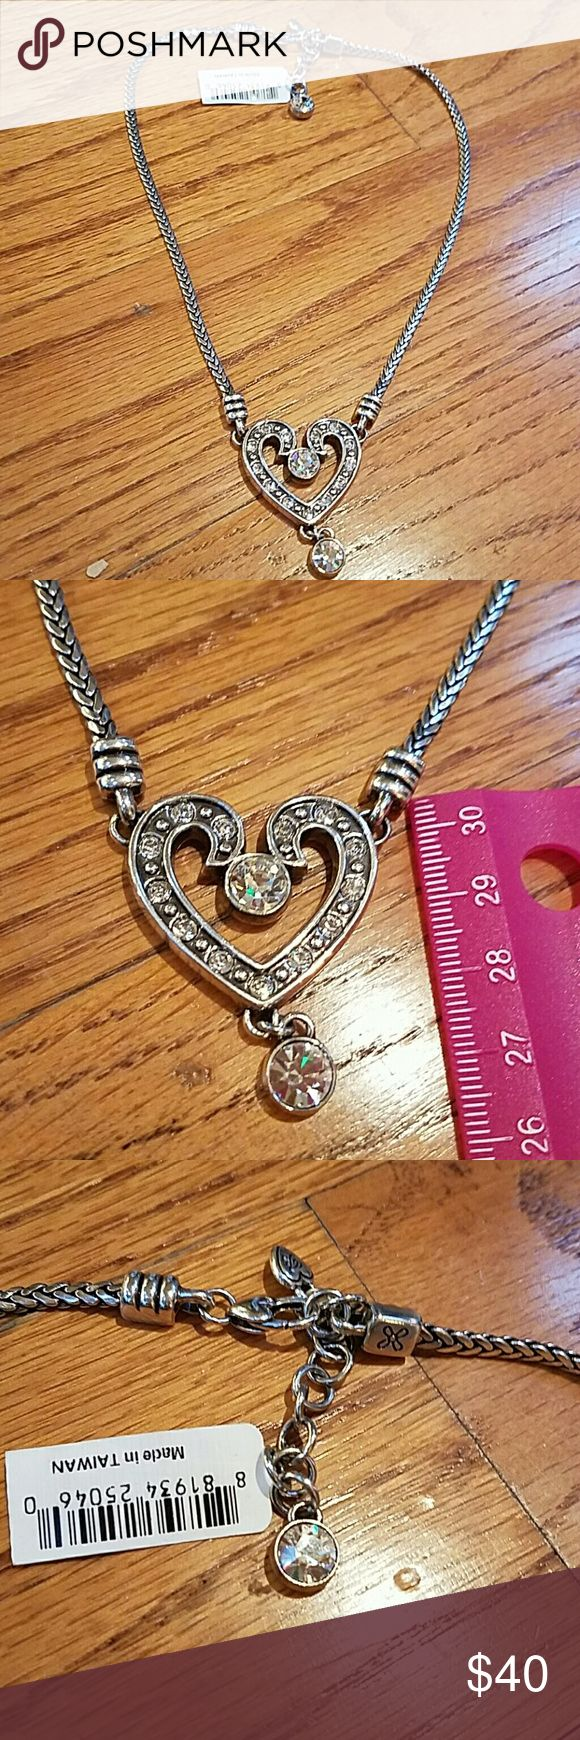 "Brighton Silver Rhinestone Crystal heart Necklace New with tag, approx 16"", Brighton Jewelry Necklaces"